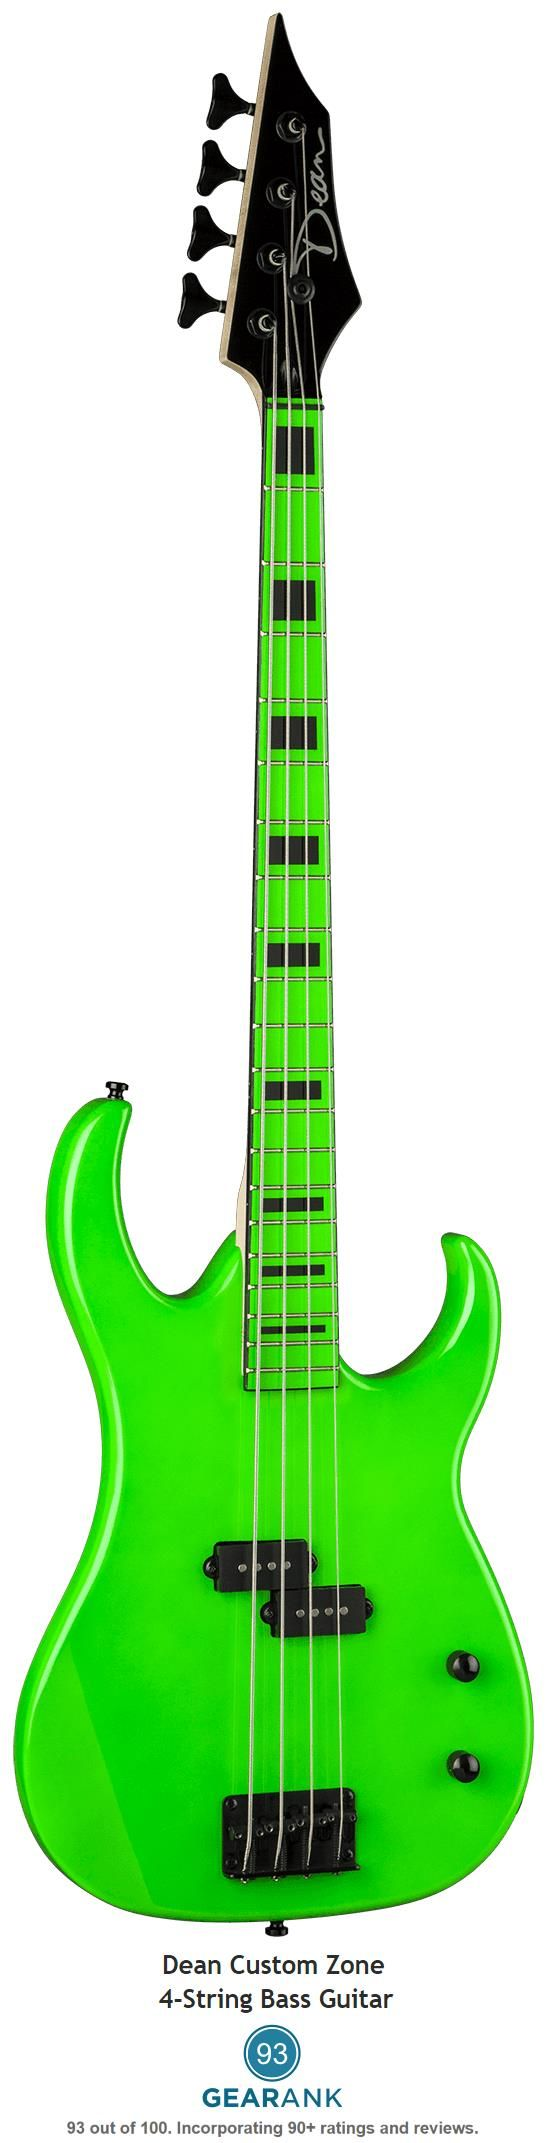 The Highest Rated Bass Guitar Under $200 is the Dean Custom Zone Bass.